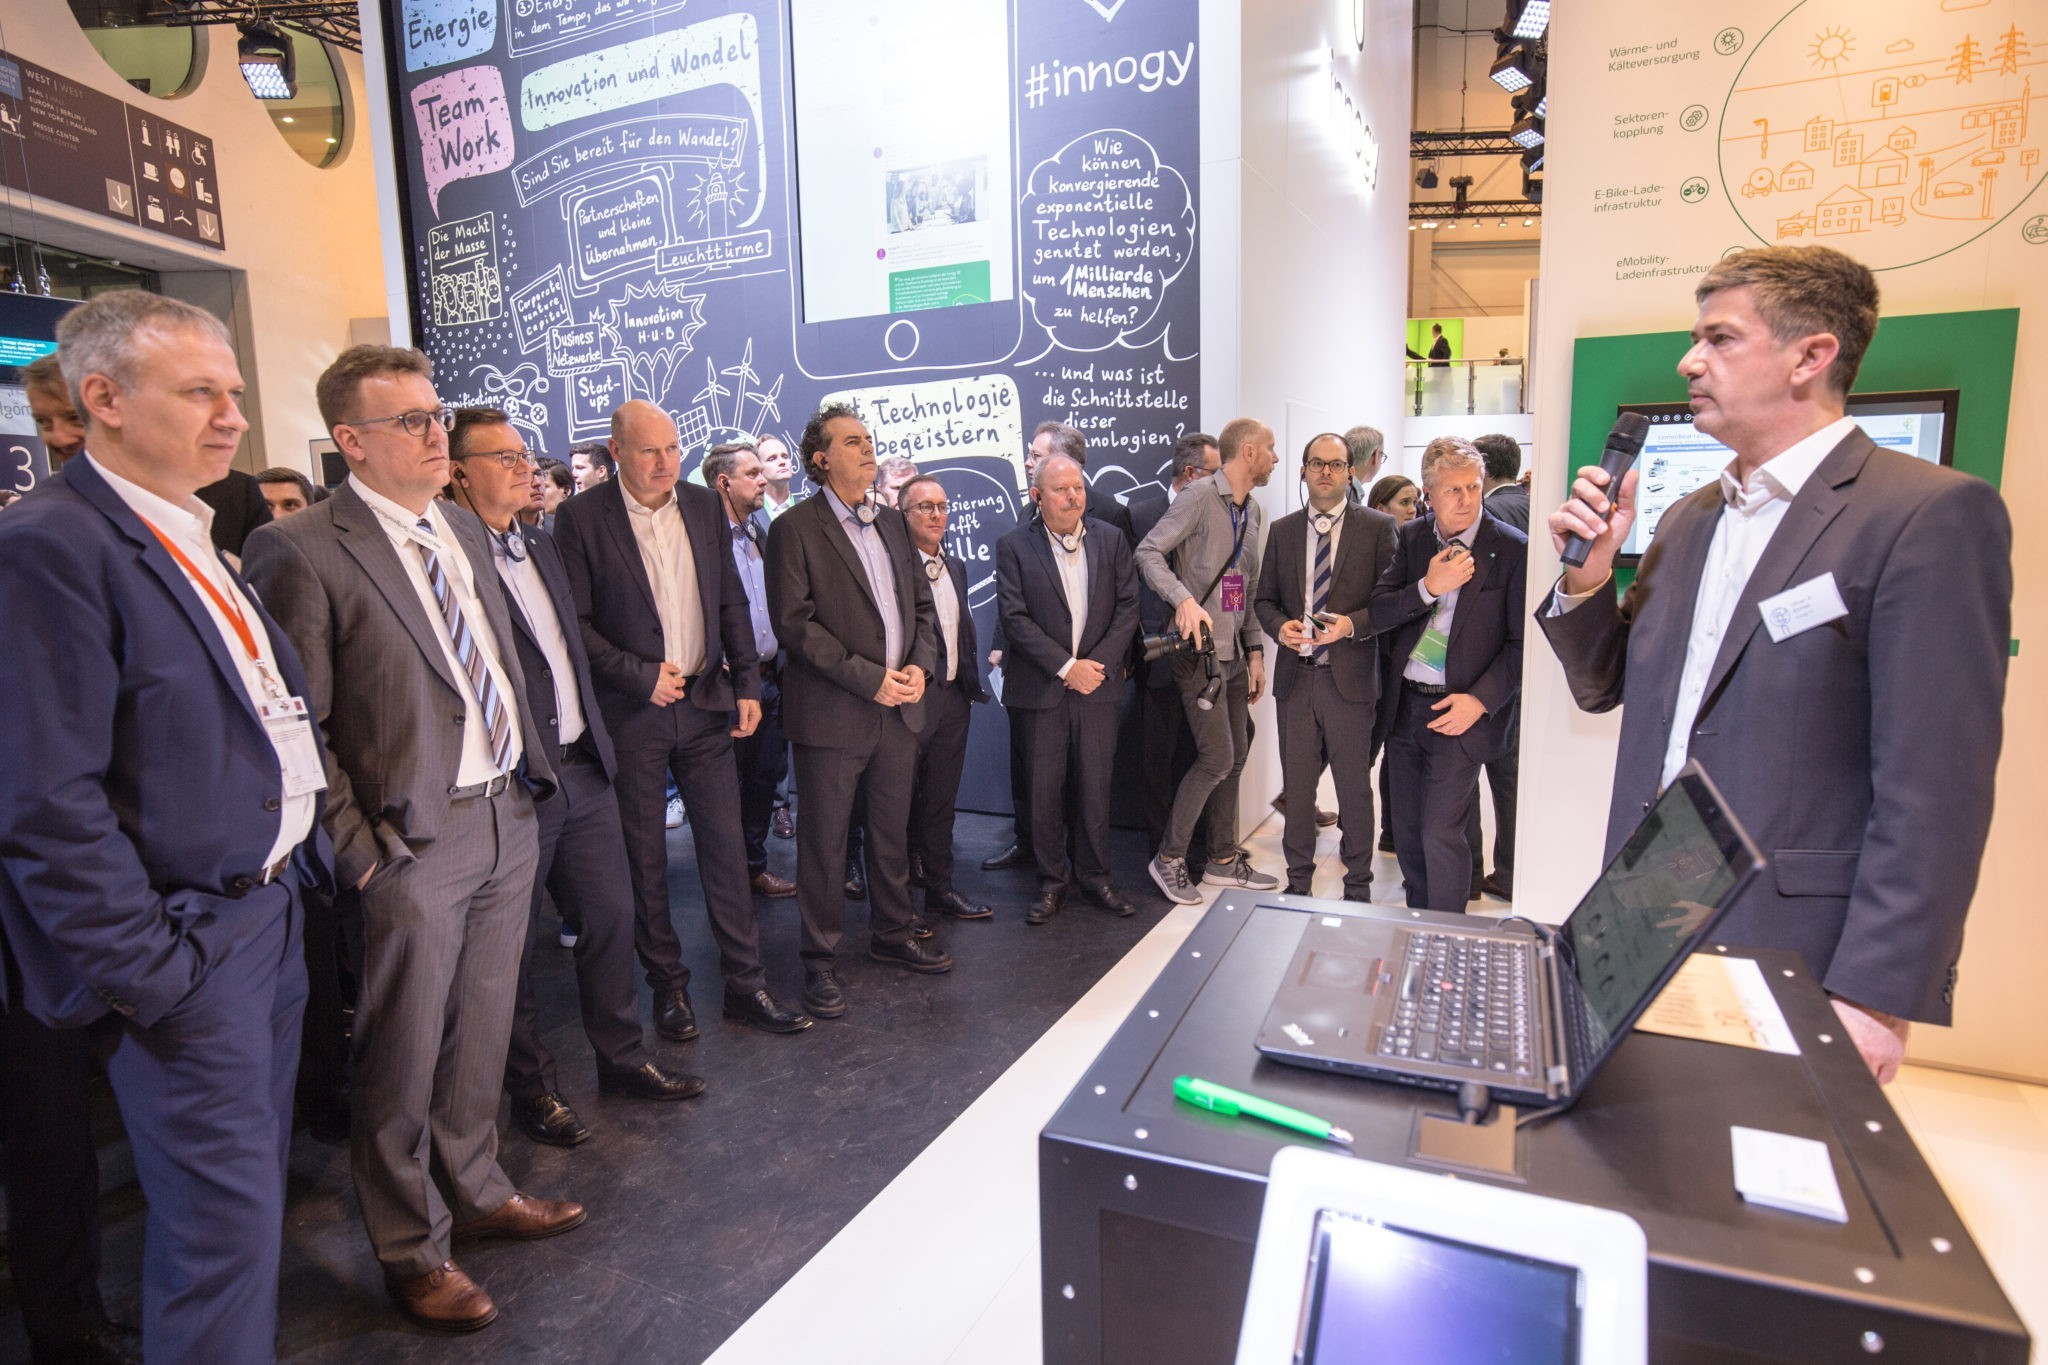 GdW Delegation visiting innogy/Lemonbeat Stand at e-World 2019